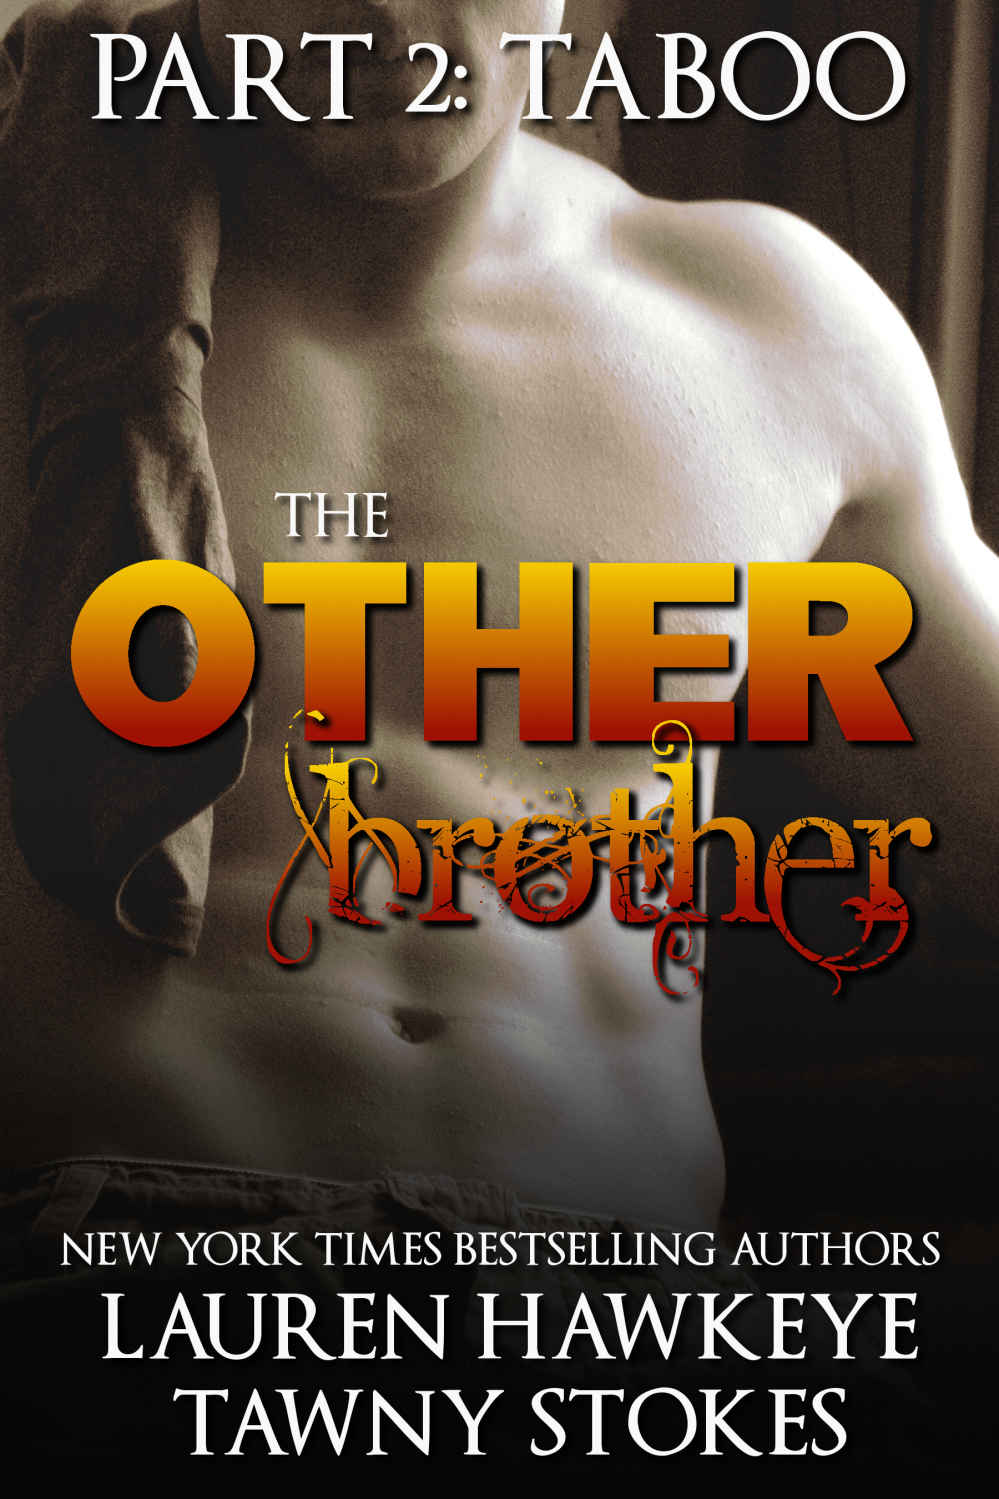 """Read online """"The Other Brother Part 2: Taboo: Stepbrother"""